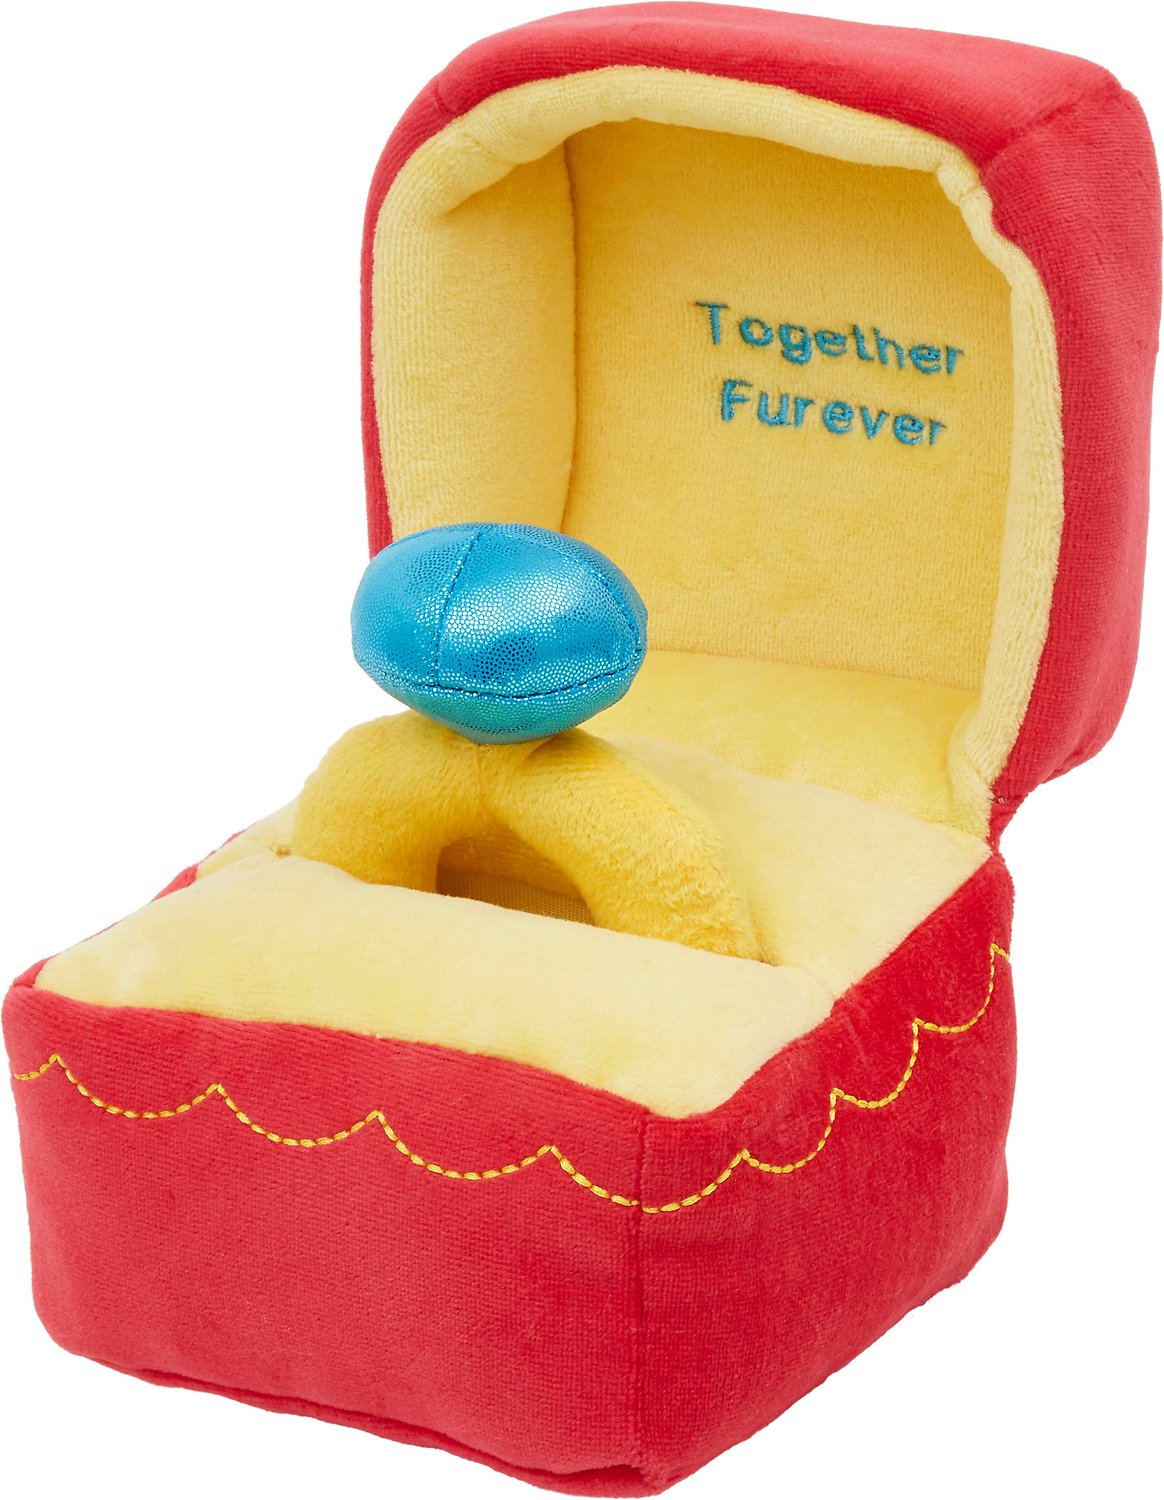 Frisco Valentine 2-in-1 Ring Plush Squeaky Dog Toy